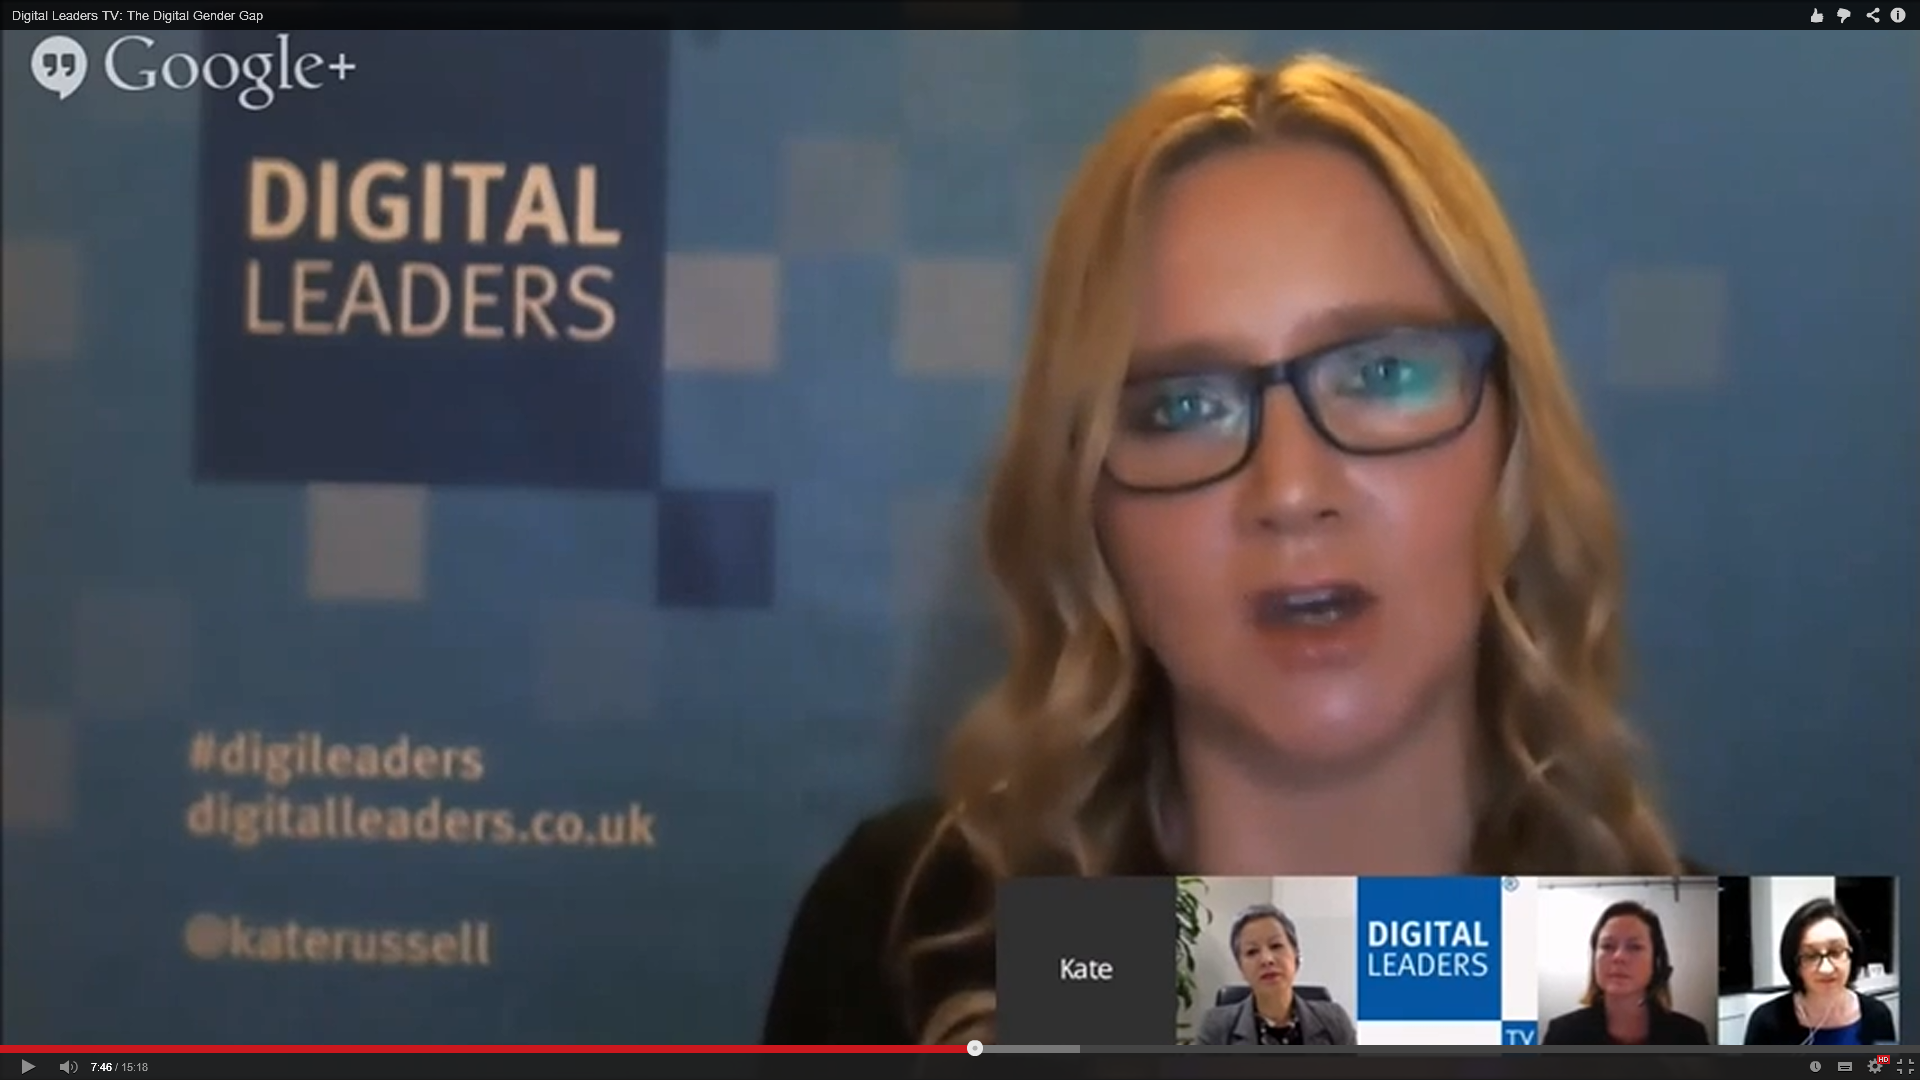 DLTV: This month's Digileaders TV tackled the digital gender gap